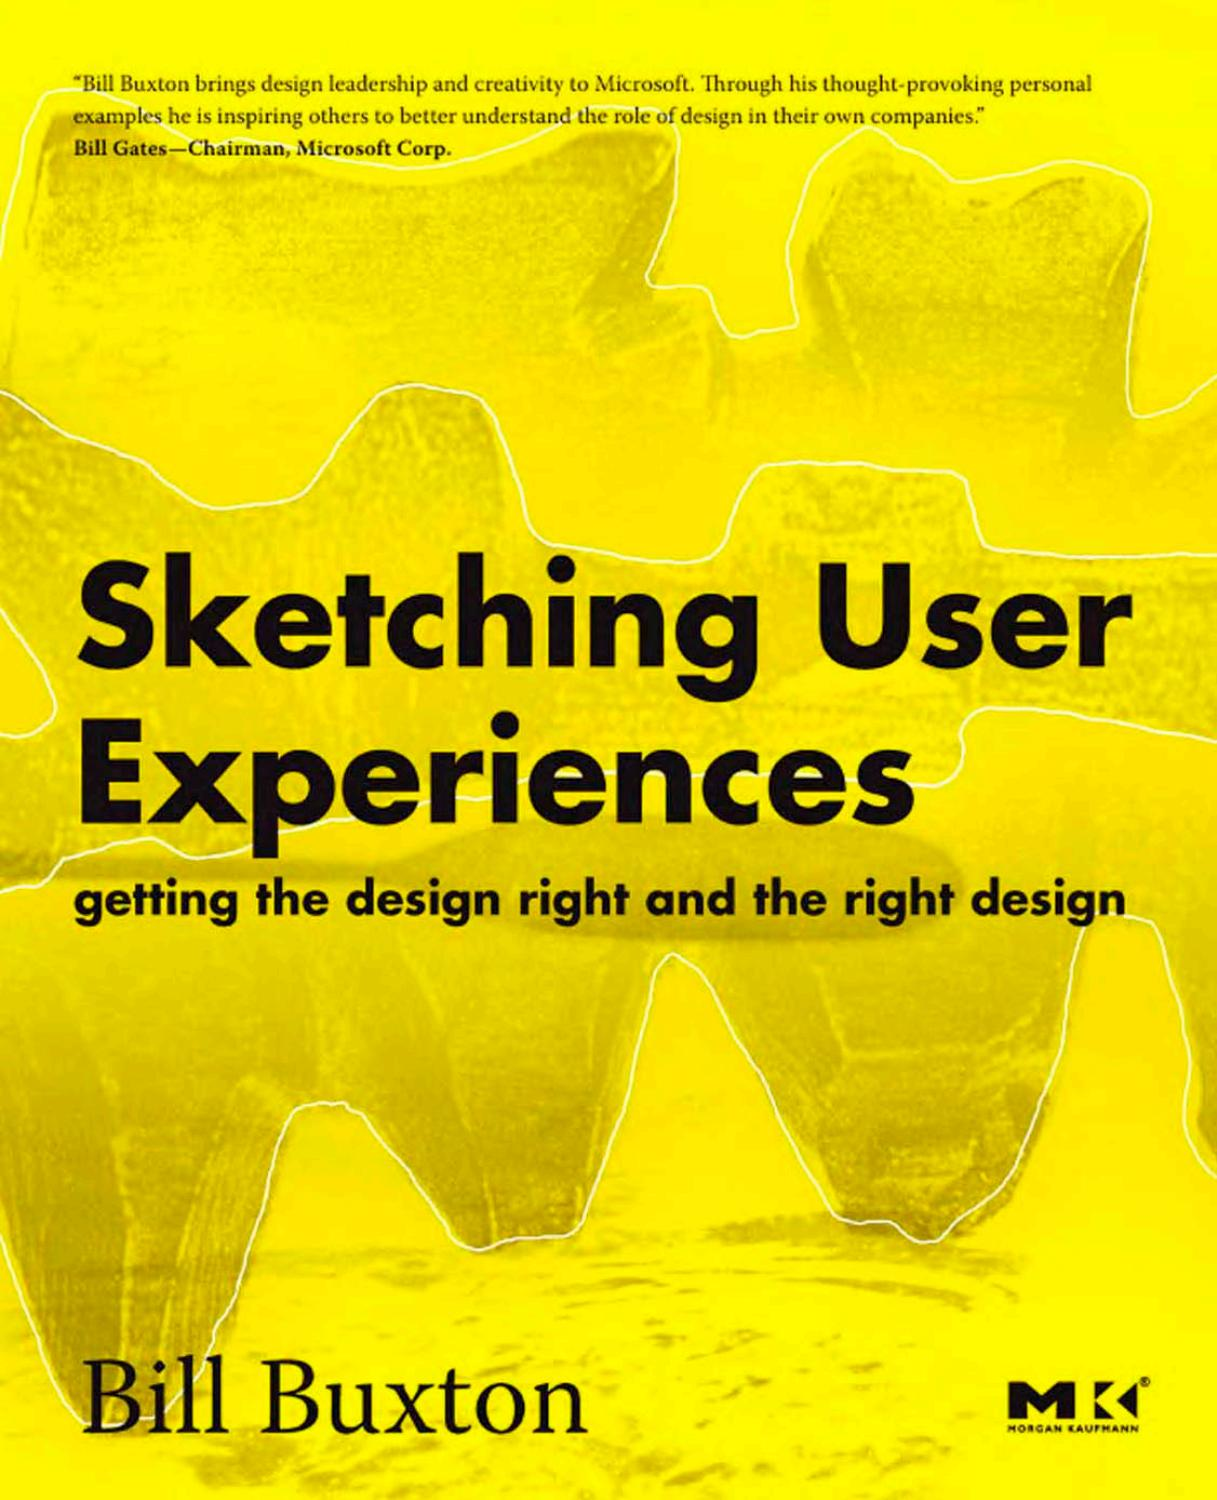 Sketching User Experiences Bill Buxton By Mario Badilla Issuu